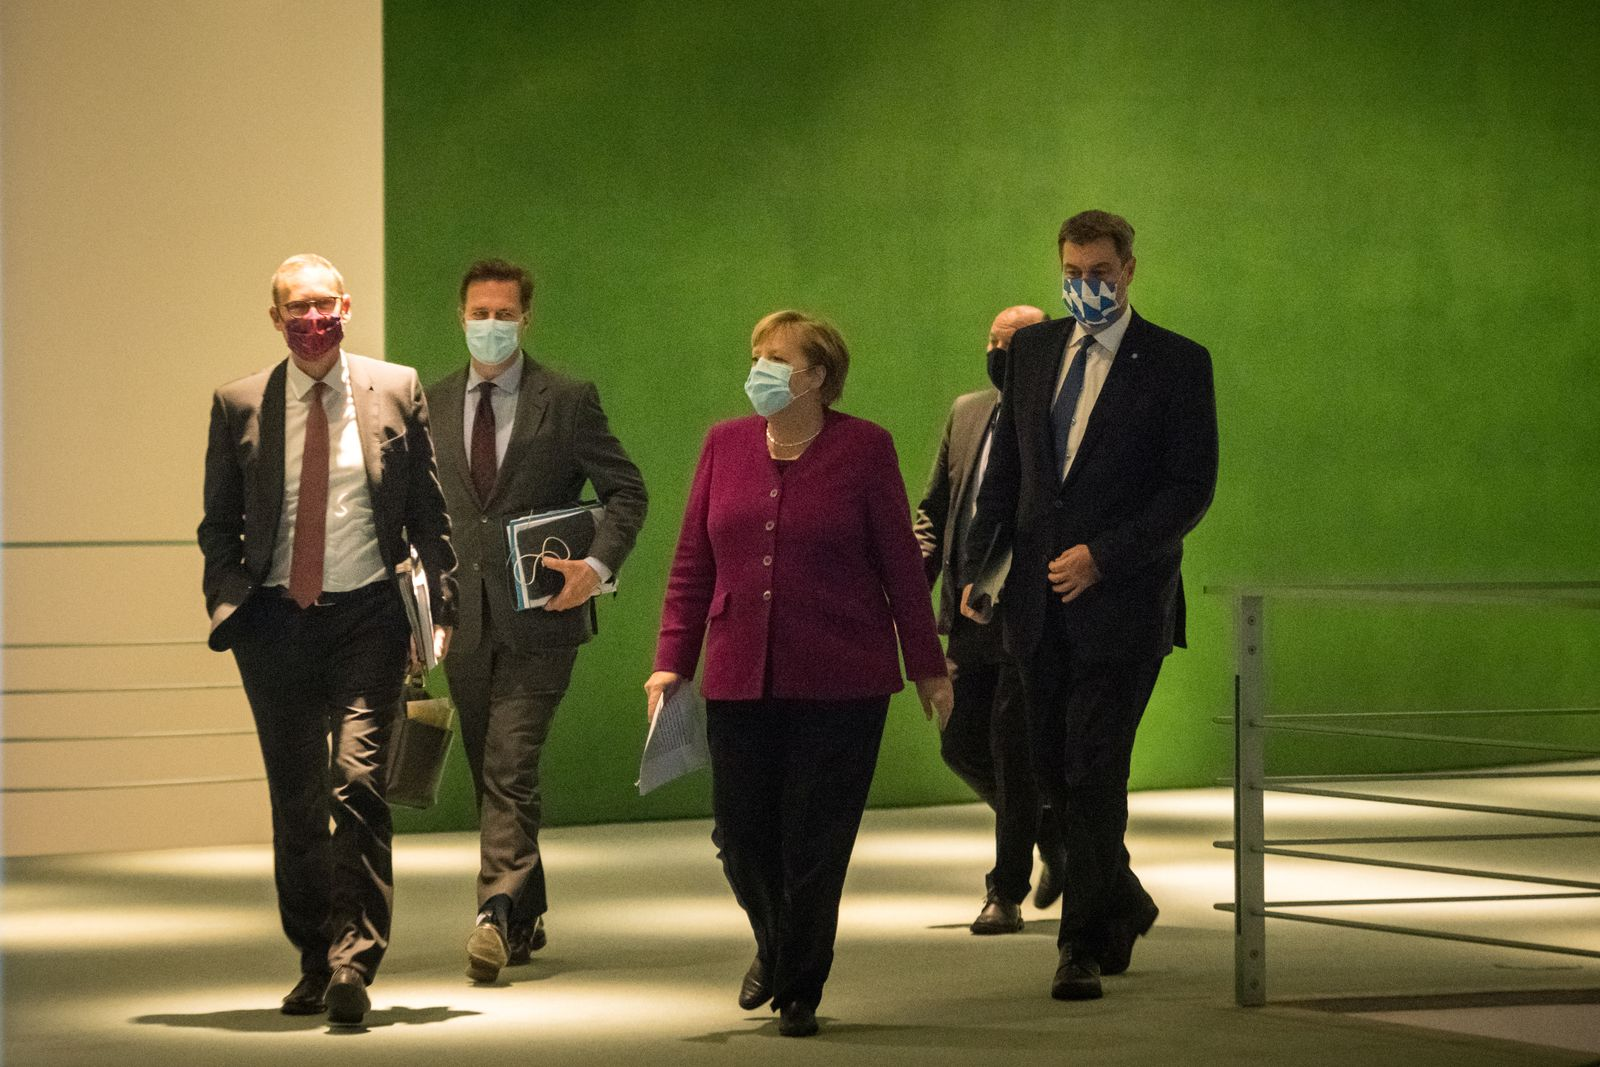 German Chancellor Angela Merkel , Bavaria's State Premier Markus Soeder and Berlin's mayor Michael Mueller arrive to give a press conference after a meeting of states' leaders on the coronavirus situation in Berlin